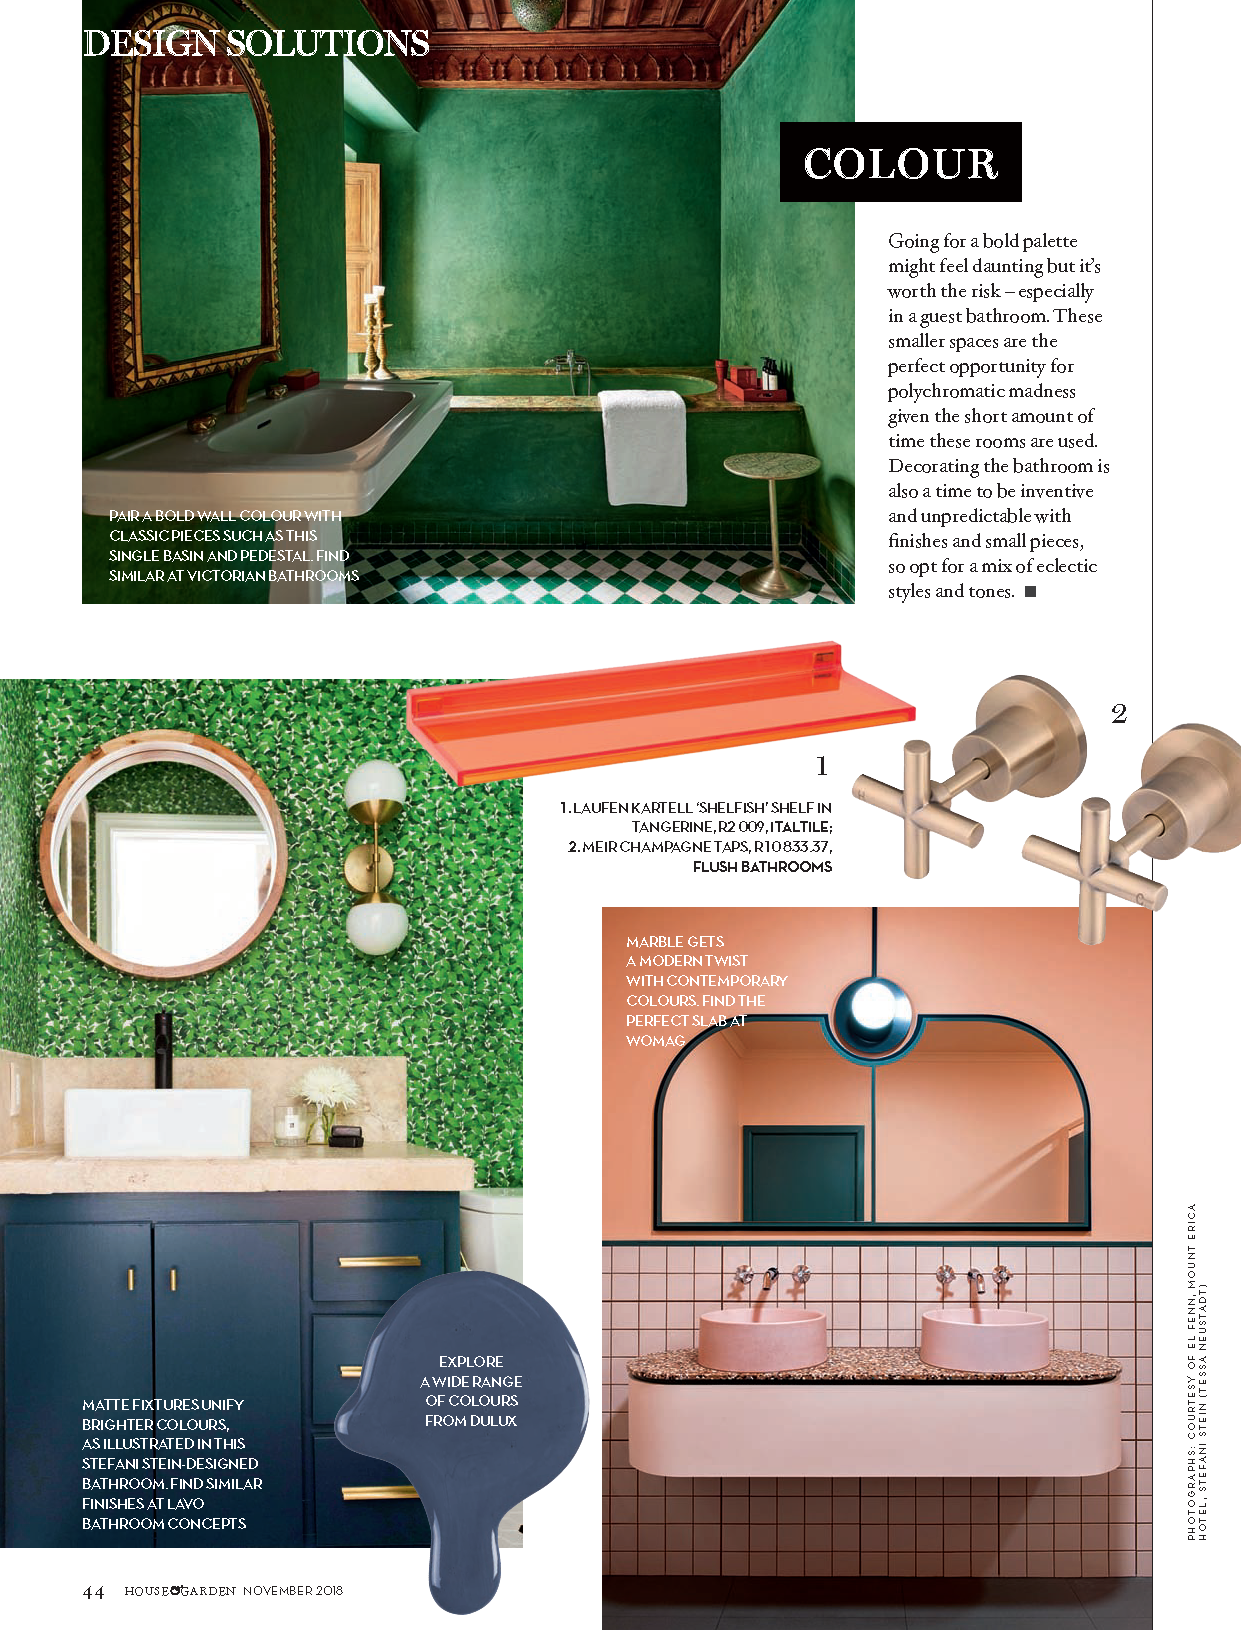 H&G Nov 18_DesignSolutions_Bathrooms_Page_4.png